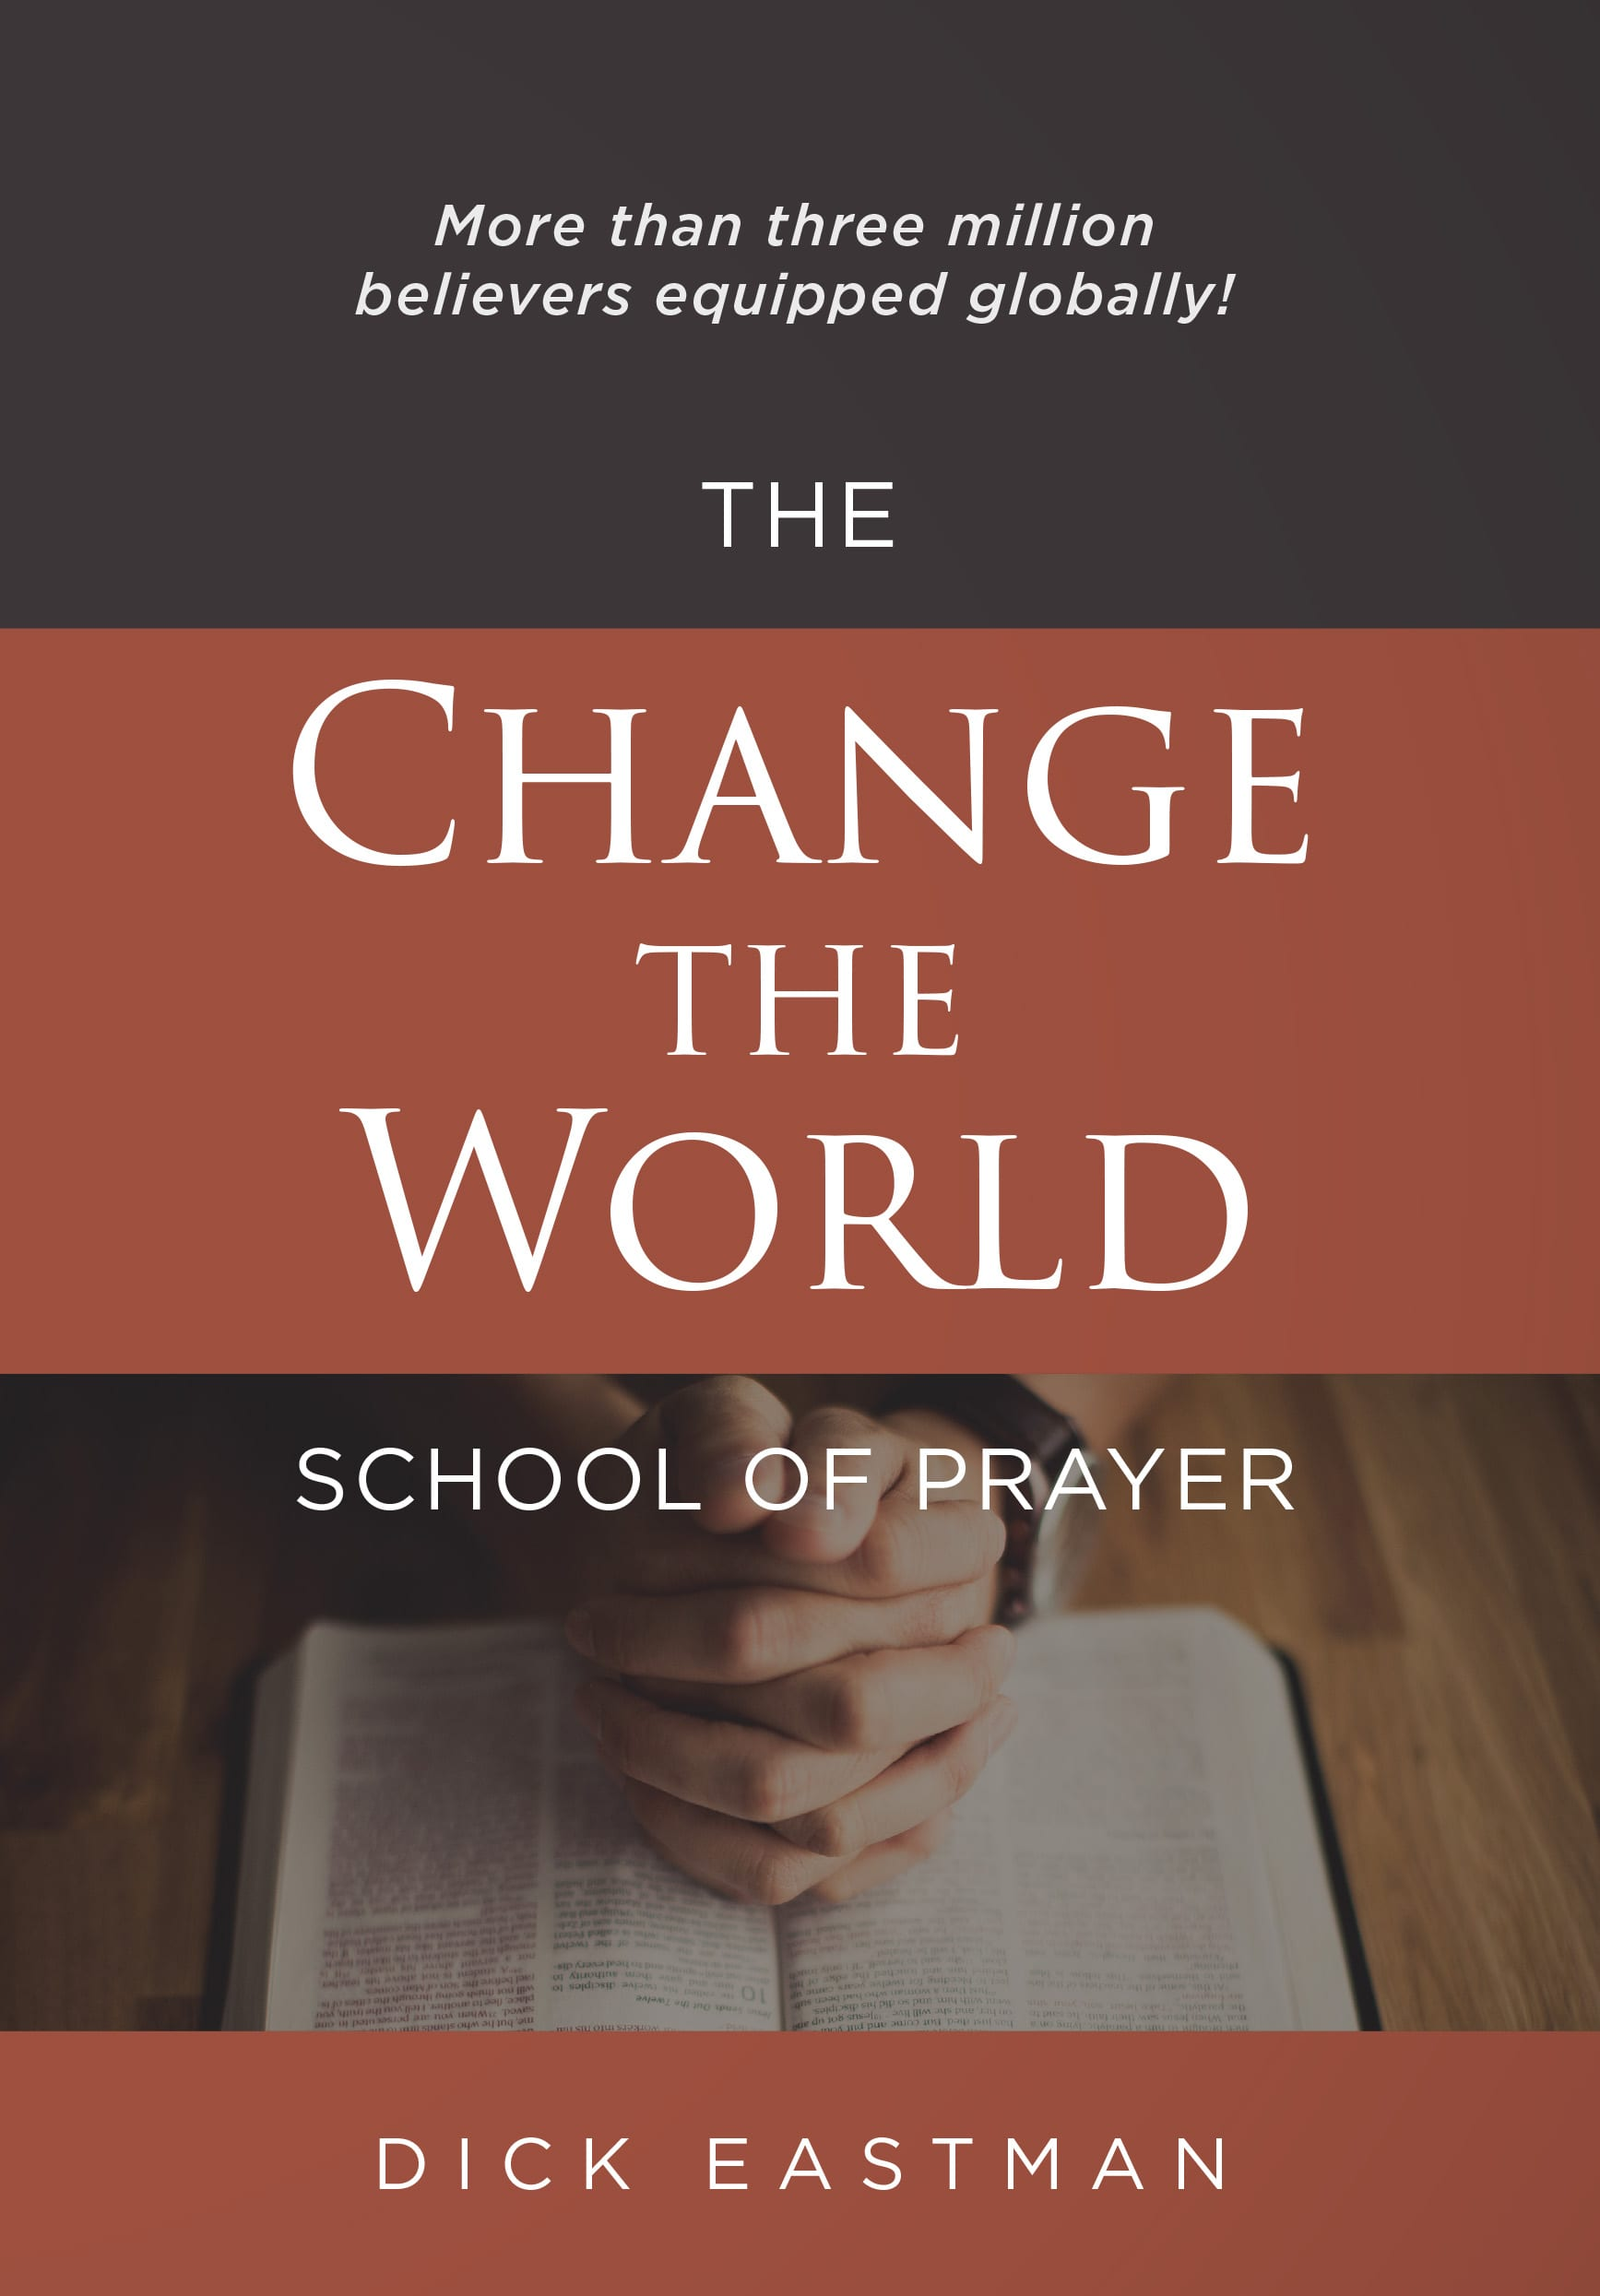 The Change the World School fo Prayer by Dick Eastman